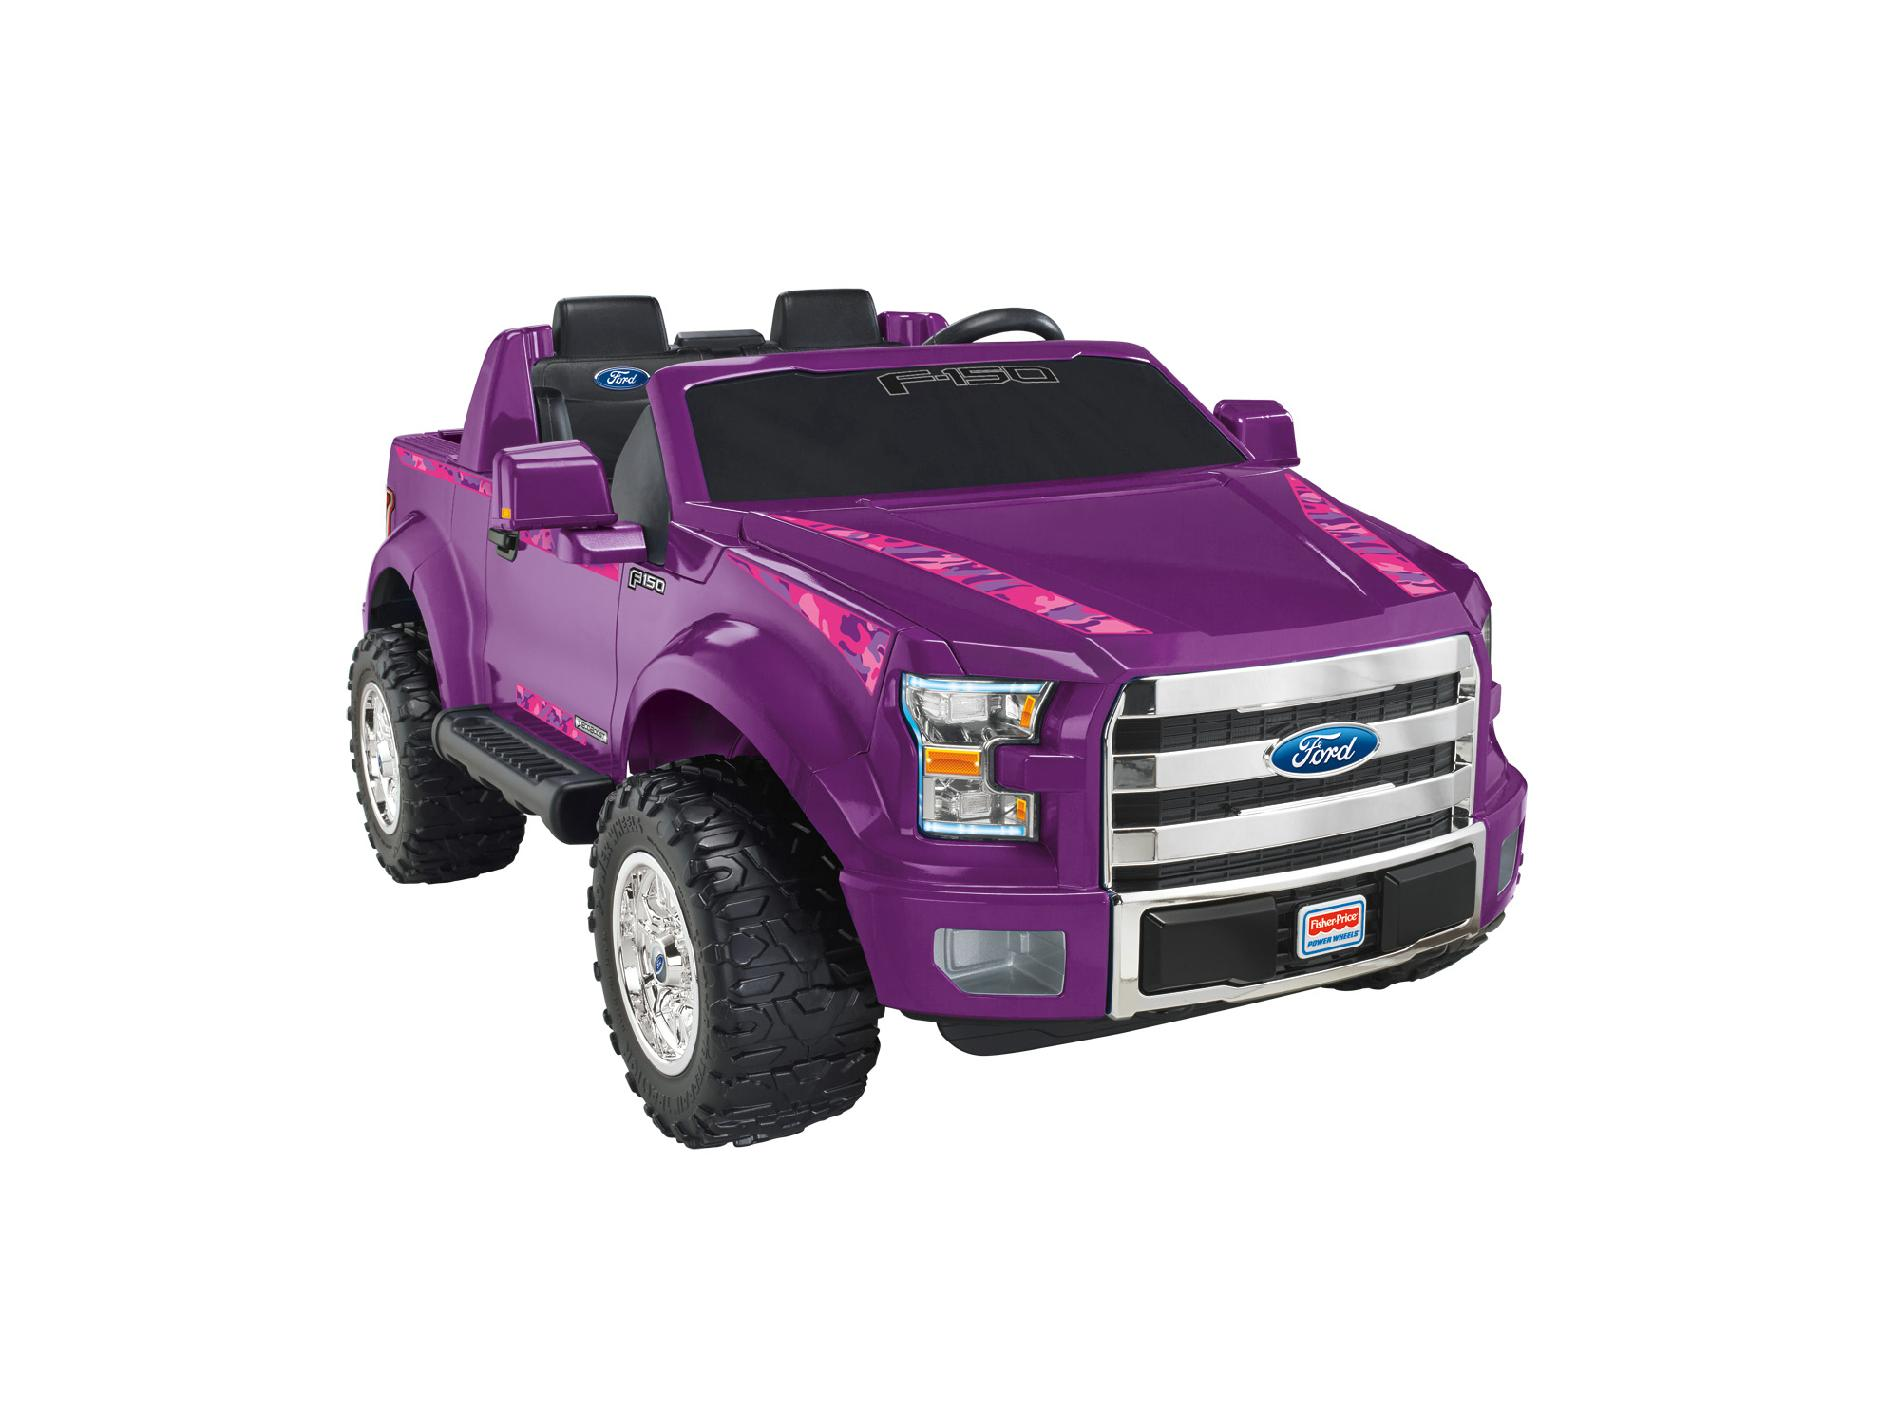 Fisher-Price Power Wheels Purple Ford F-150